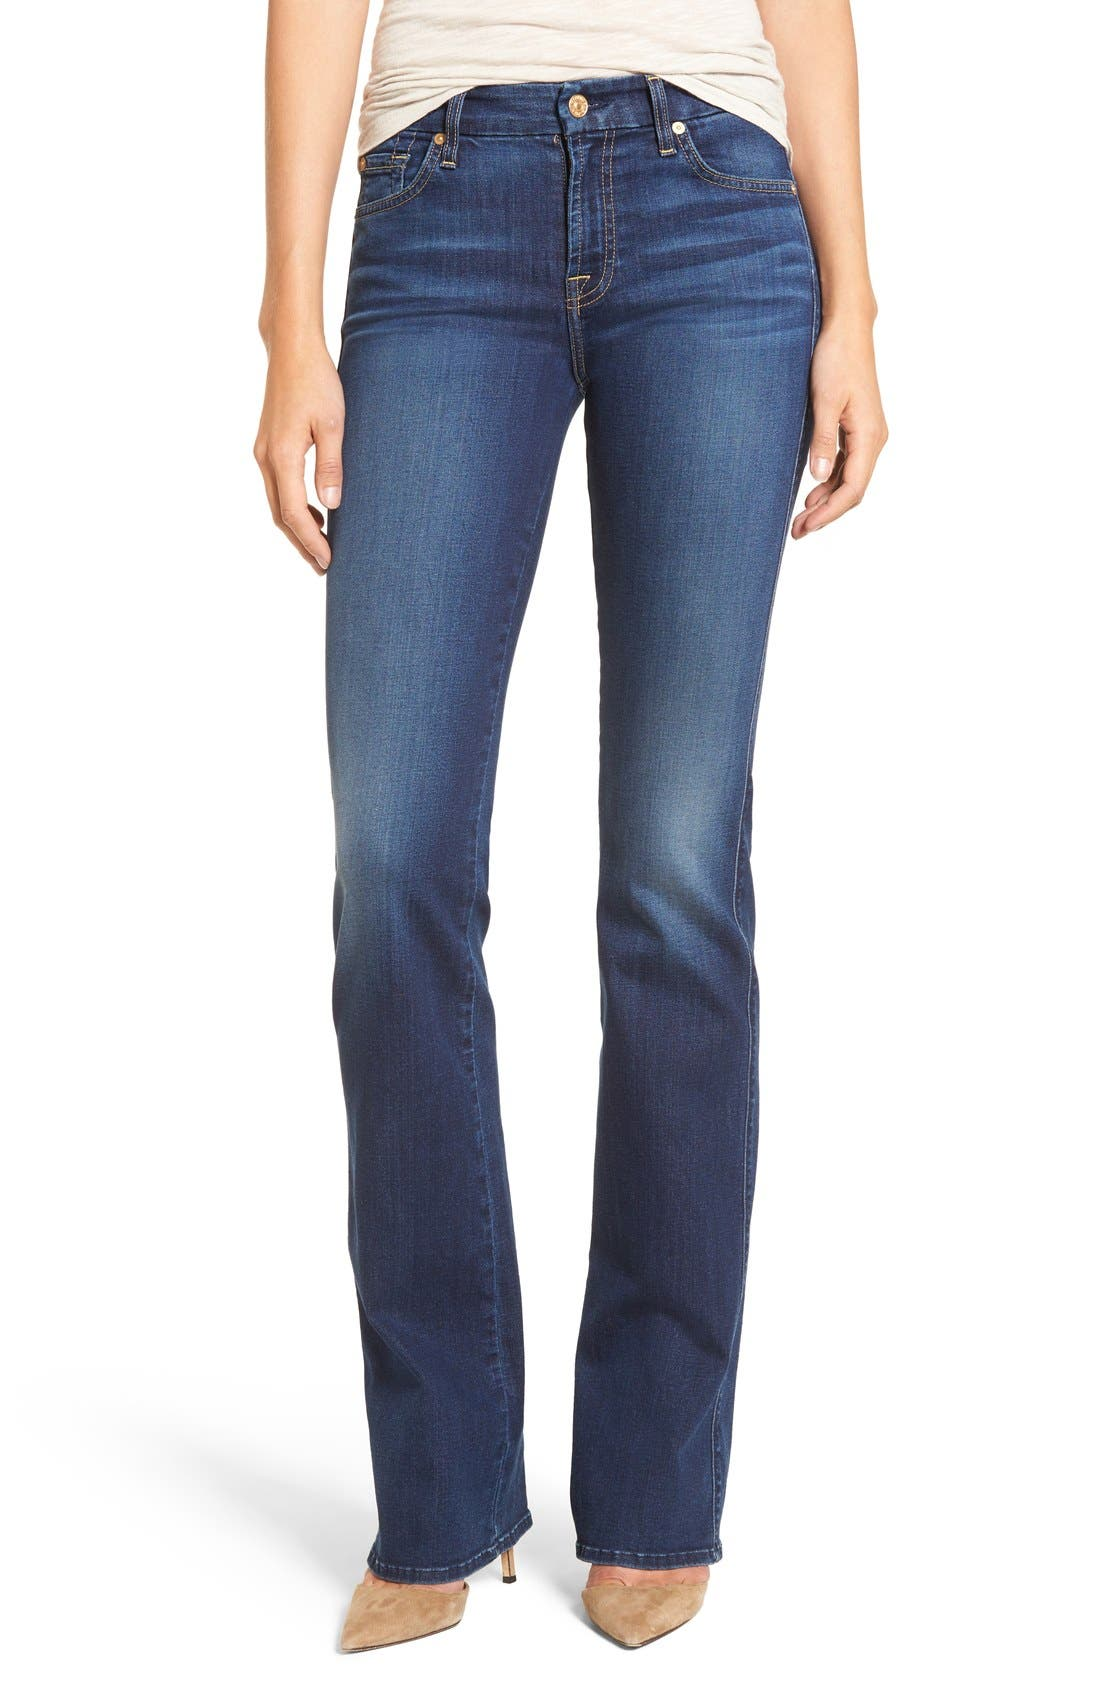 b(air) - Kimmie Bootcut Jeans,                             Main thumbnail 1, color,                             Duchess